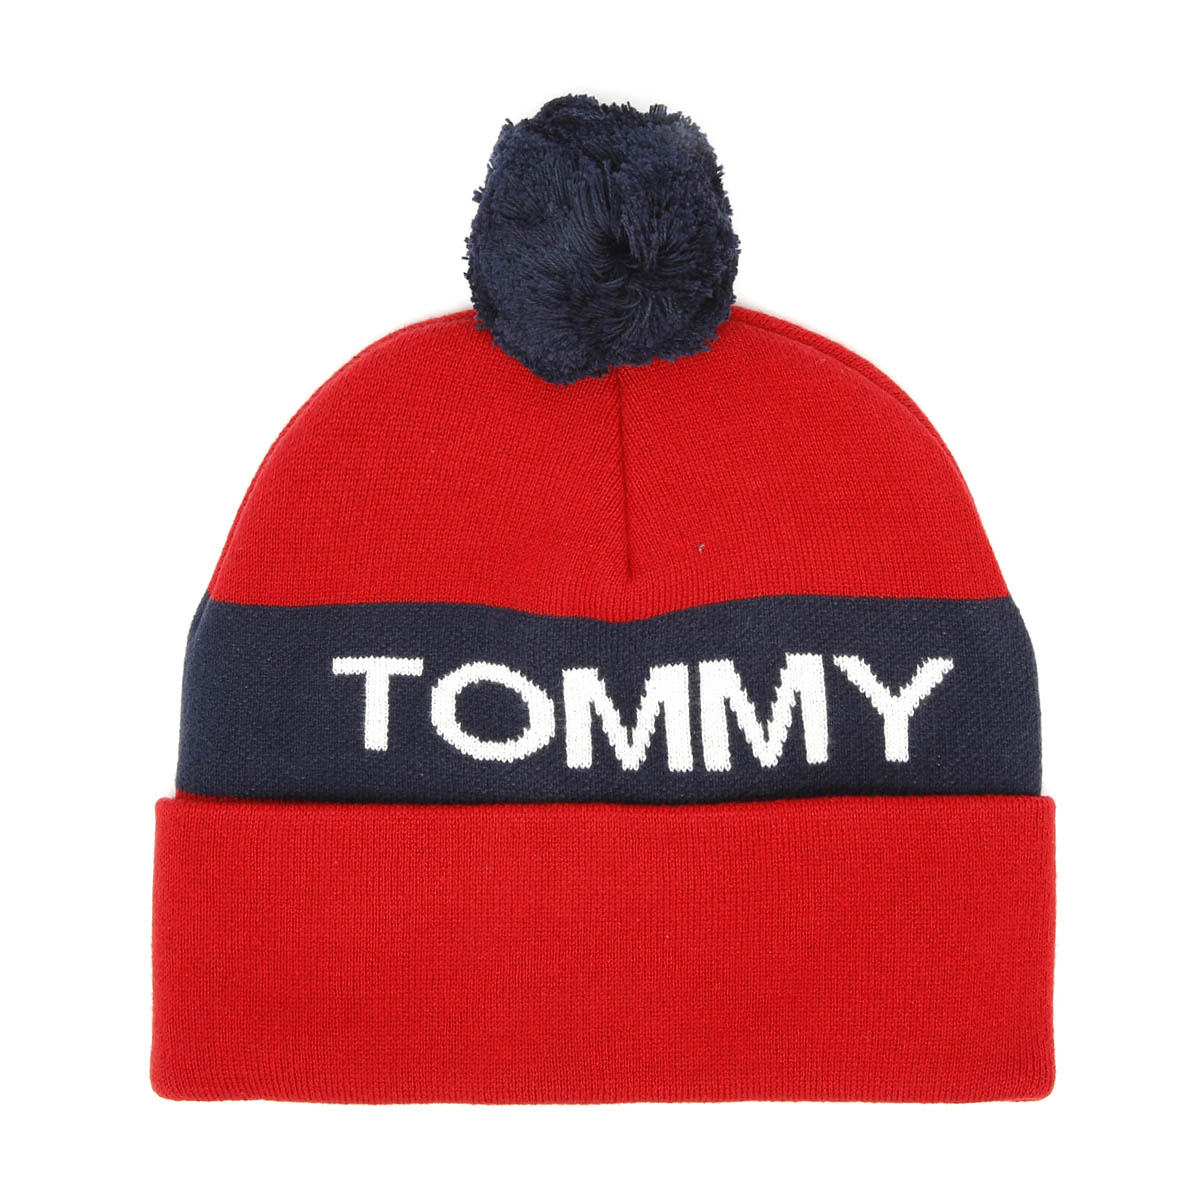 62b8c680809 Tommy Hilfiger Rugby Stripe Corporate Red Beanie Unisex Warm Winter Knitted  Hat